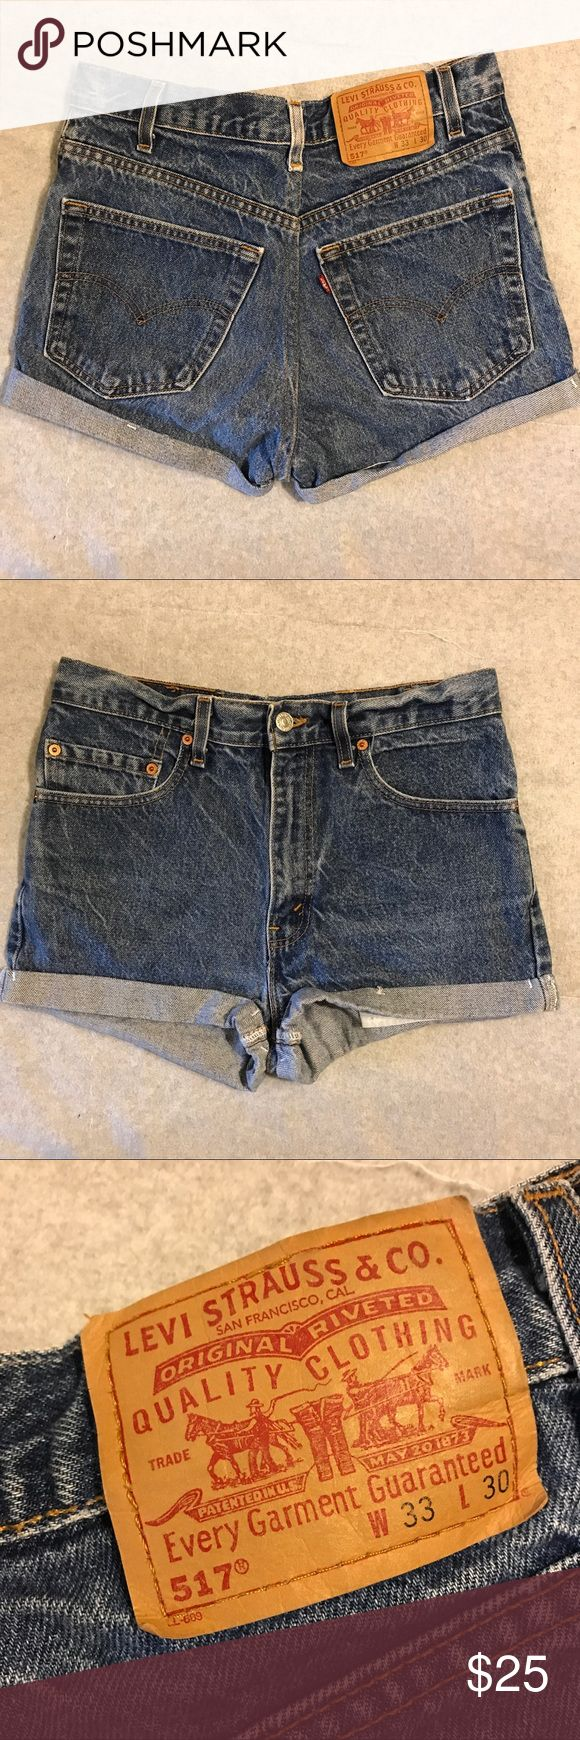 "Vintage High Rise Levi's 517 EUC / 100% cotton cuffed shorts size 33 but waist measurement is approx 14"" flat Levi's Shorts Jean Shorts"